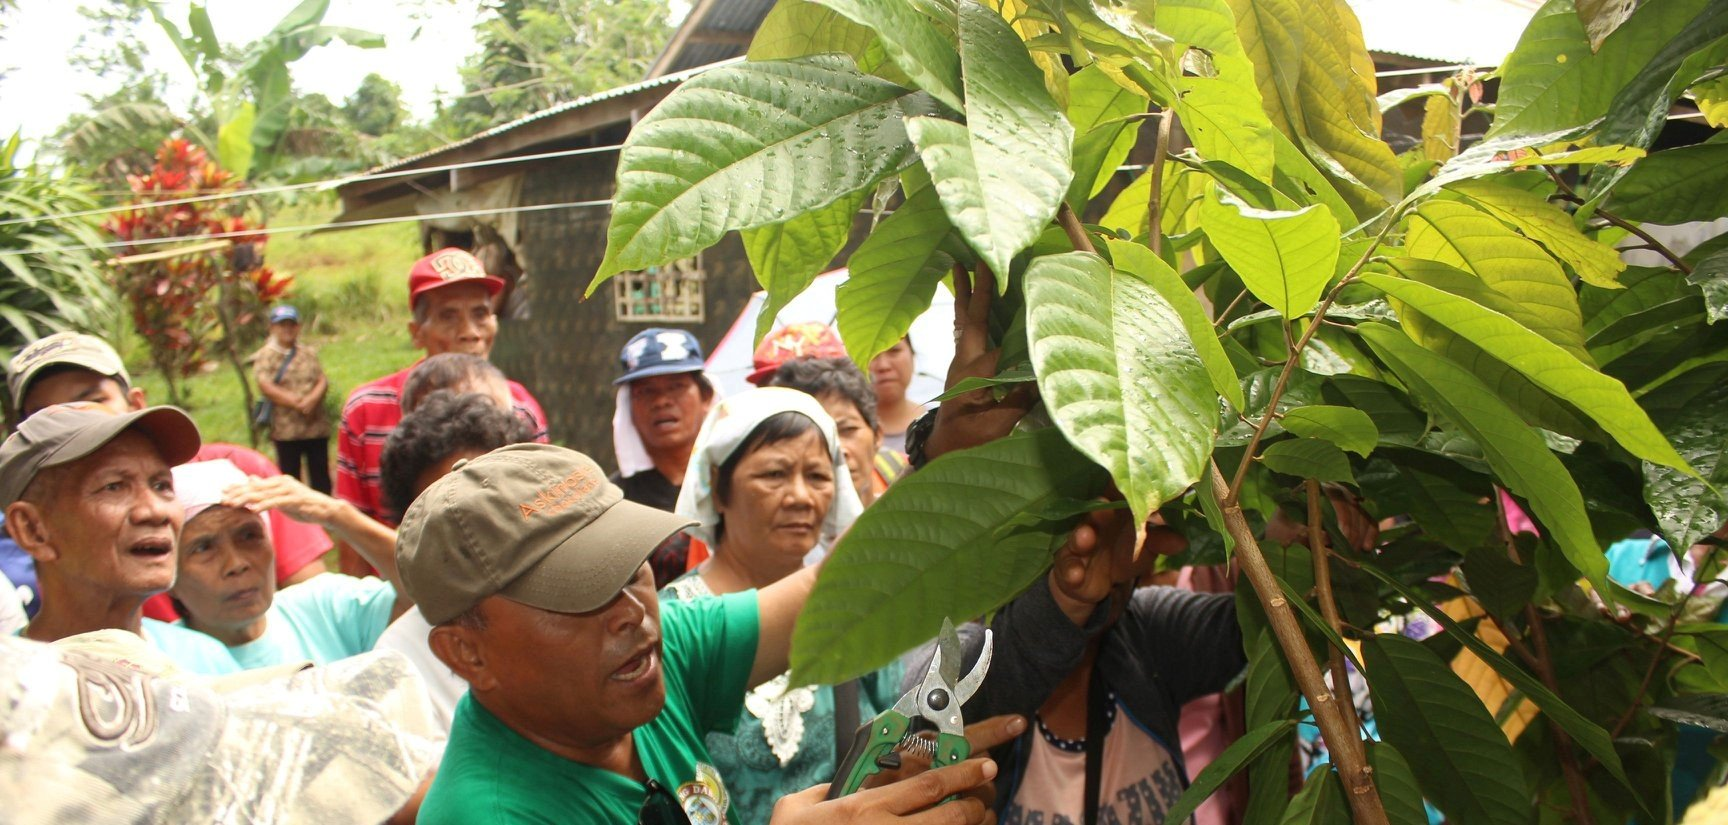 Facilitating the growth of the cacao industry